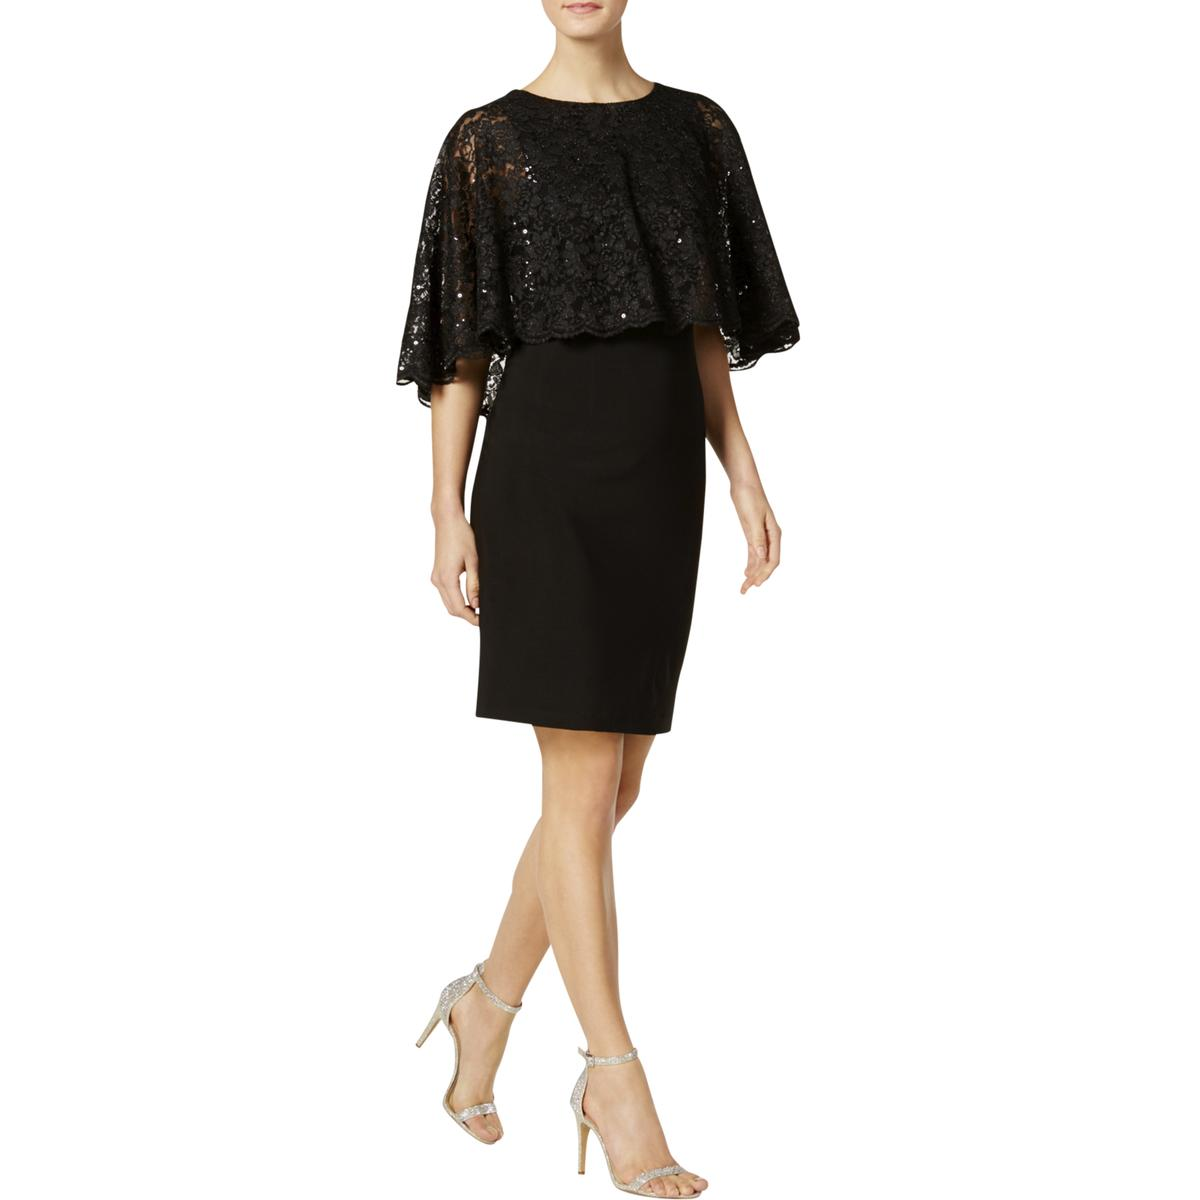 4b6c0fe60ab75 Details about Jessica Howard Womens Black Lace Popover Cape Sleeves Capelet  Dress 8 BHFO 0087